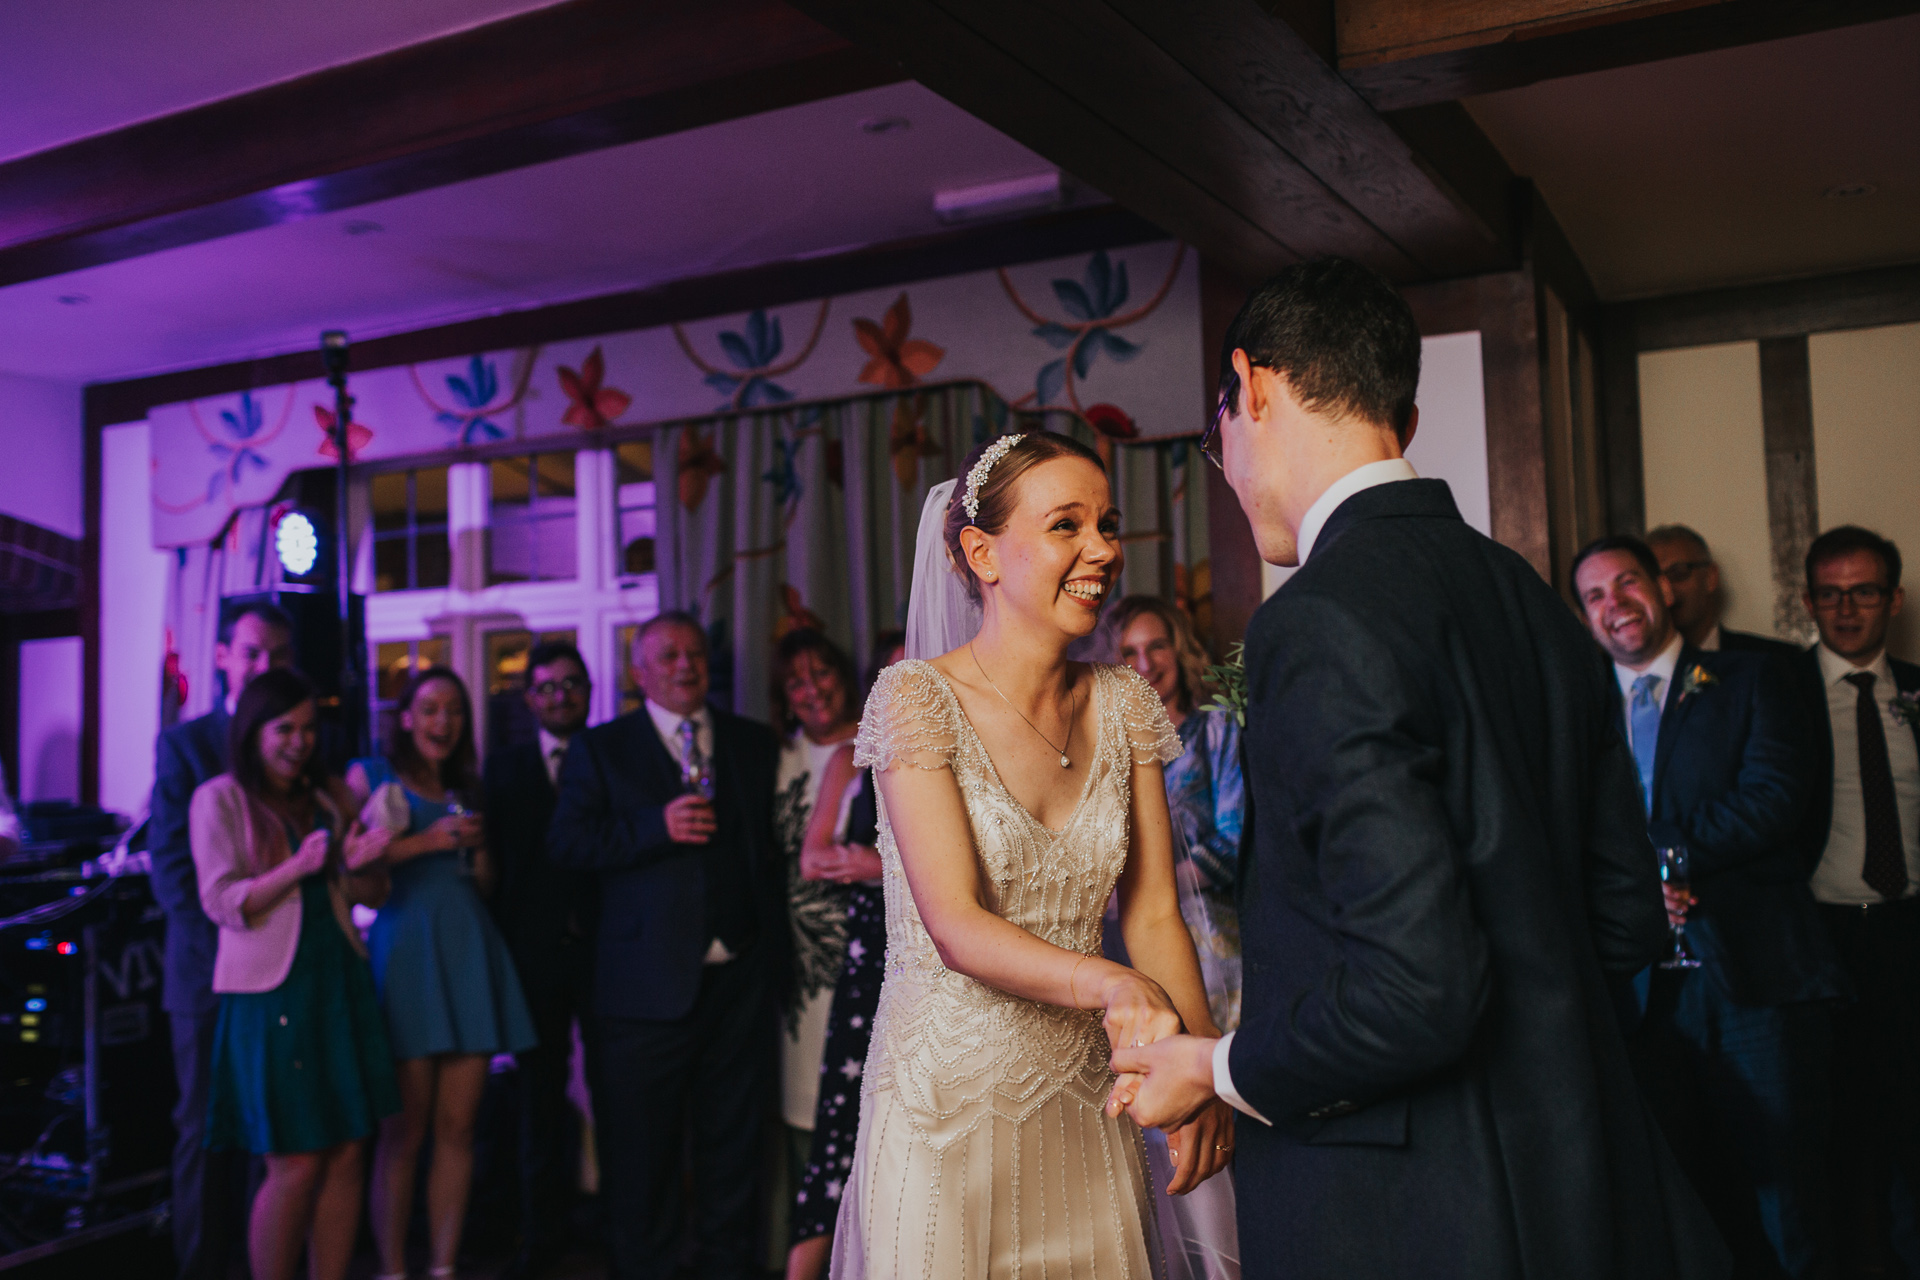 Bride laughs while dancing with her new husband.